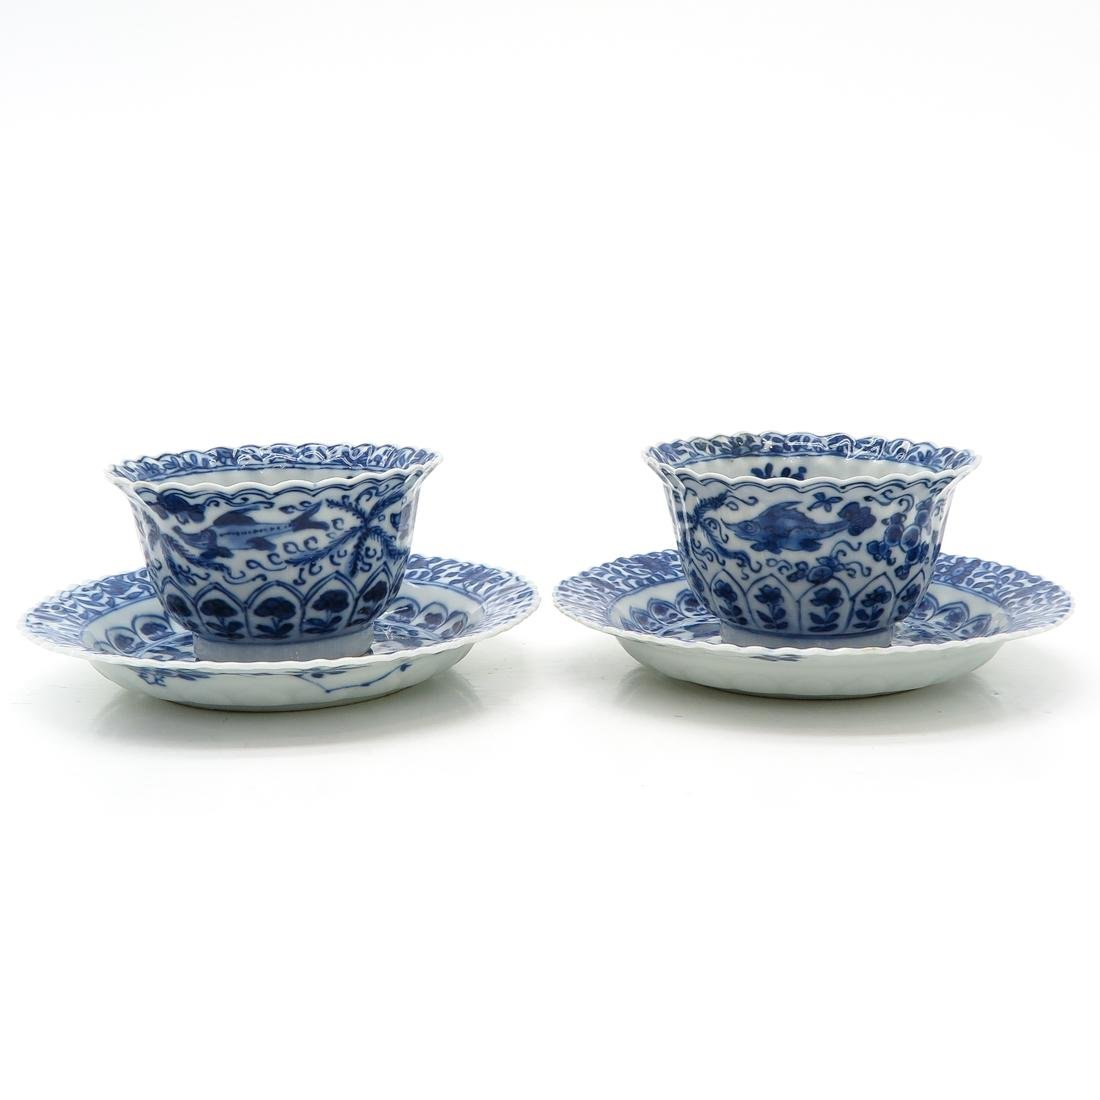 Lot of 2 Cups and Saucers - 3